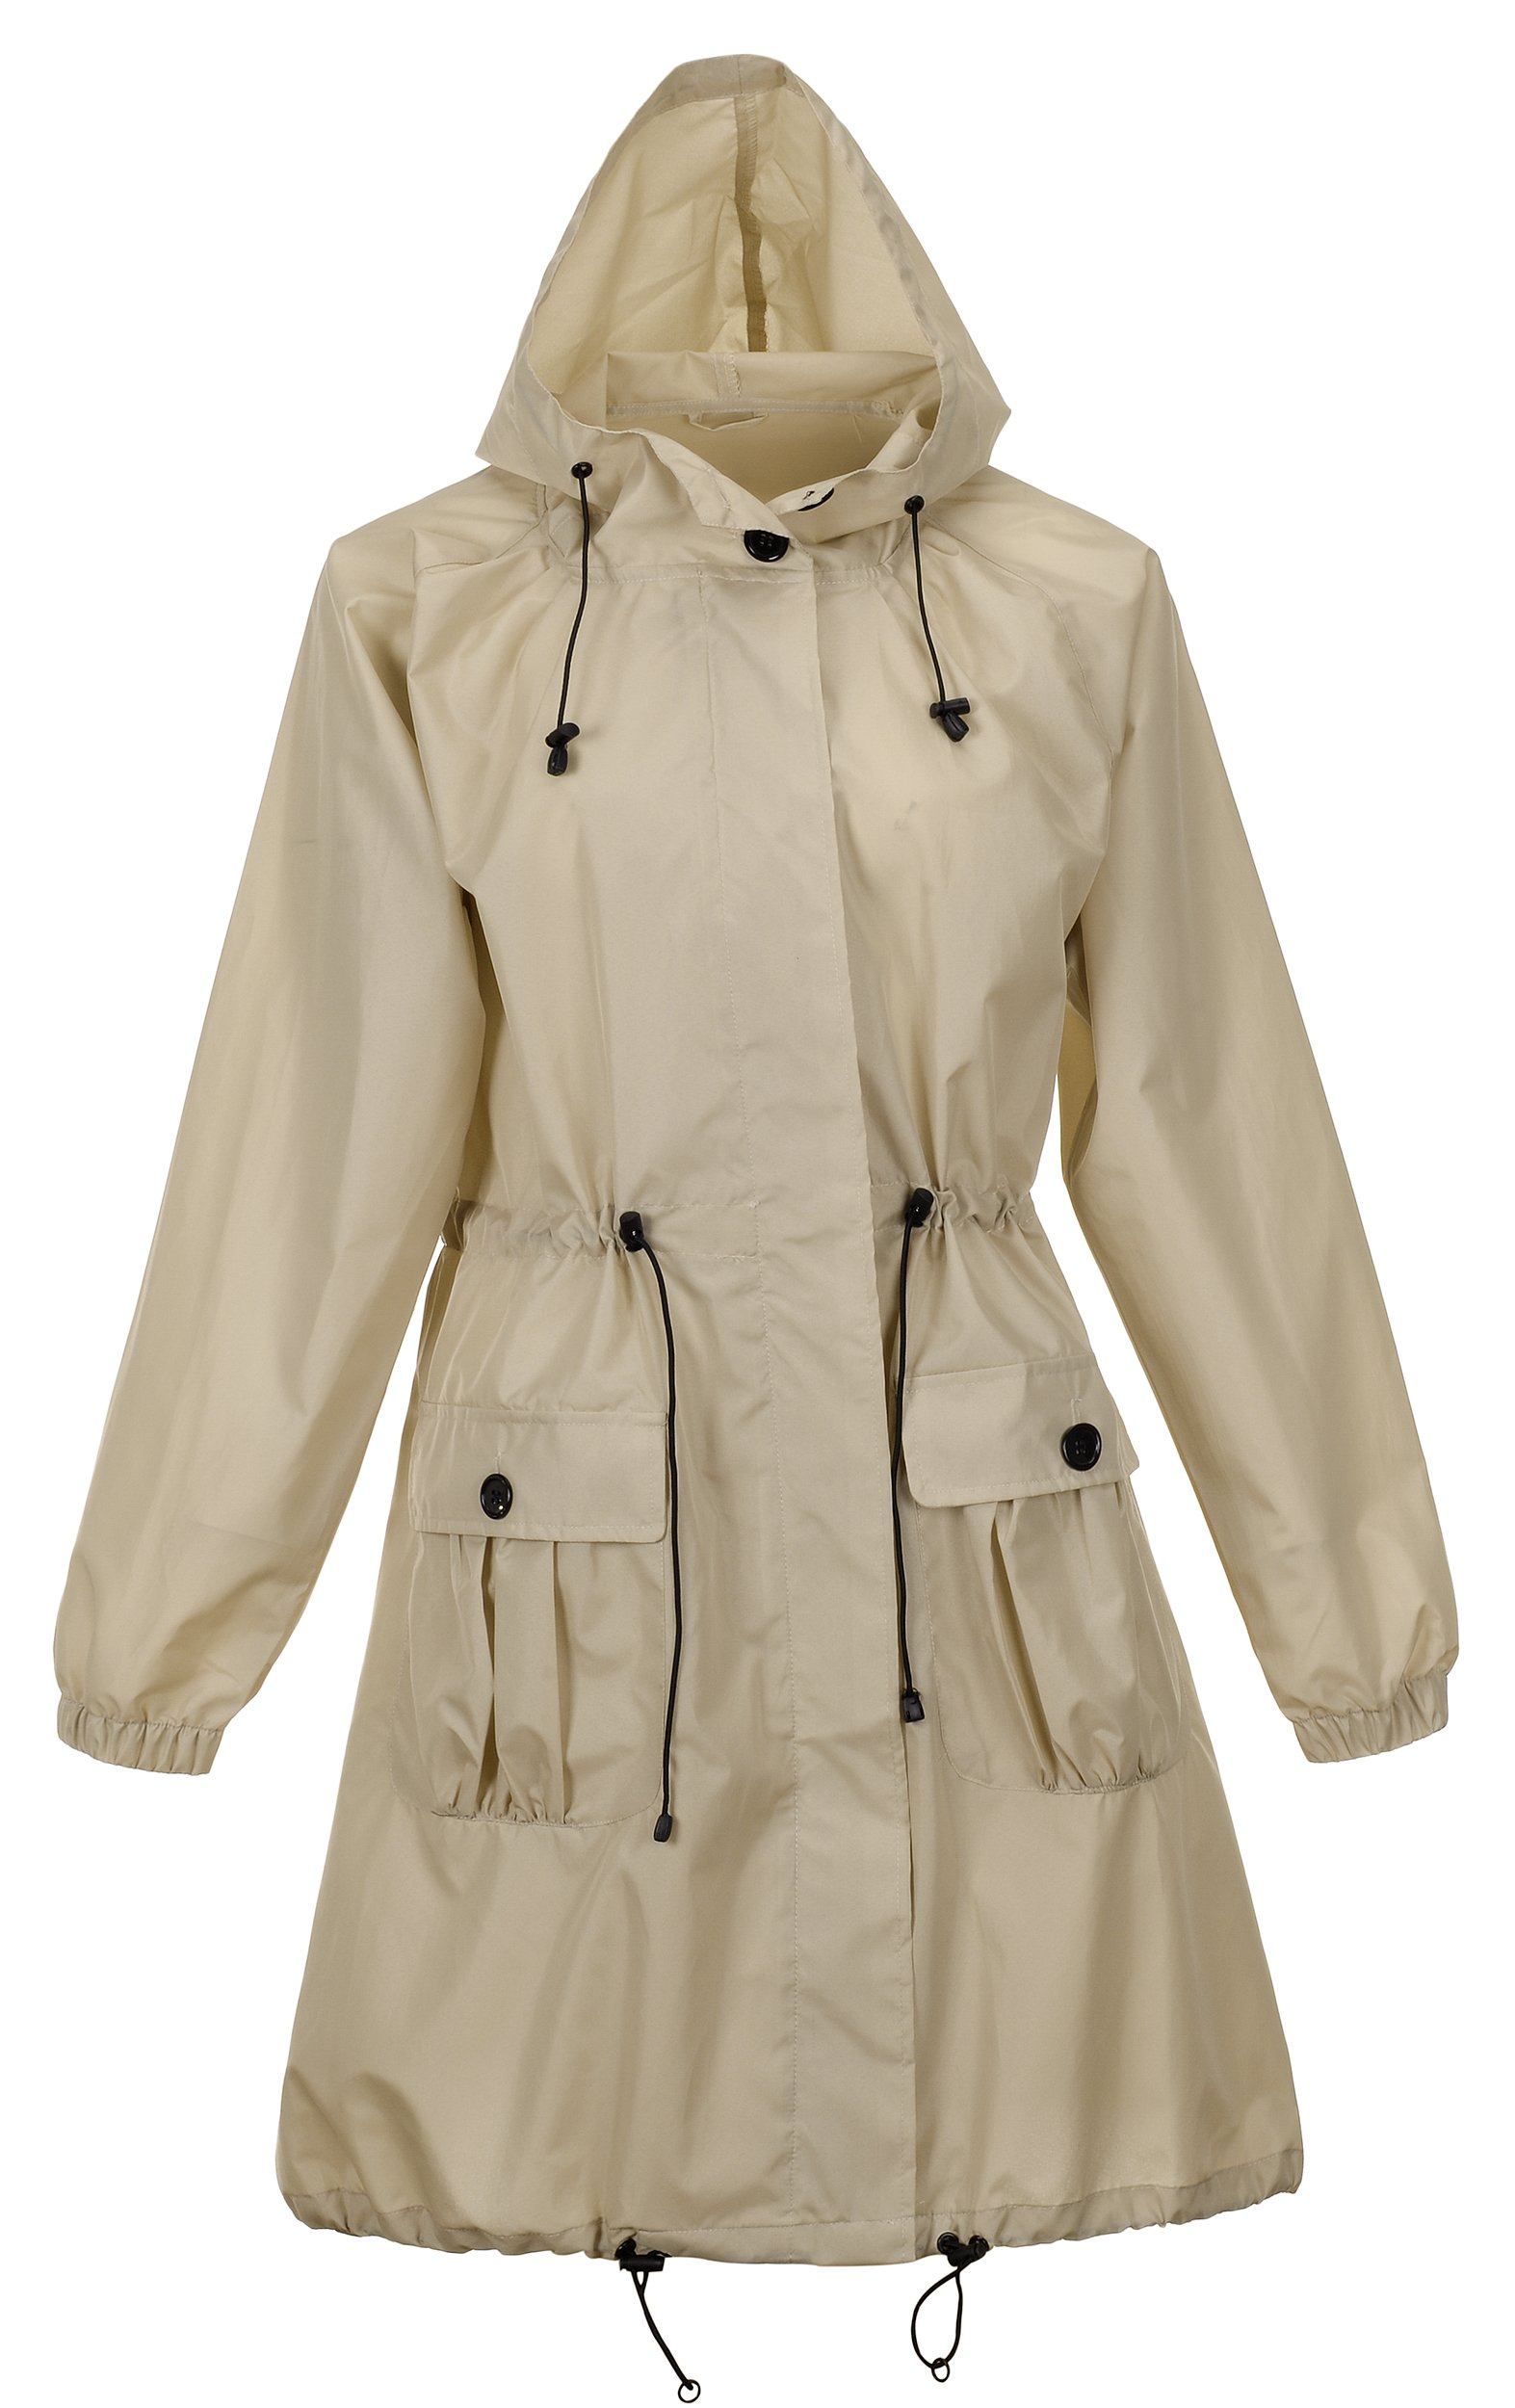 QZUnique Women's Lightweight Long Raincoat with Pockets Waterproof Packable Waist Tiecod Raincoats Windbreak Jackets Khaki